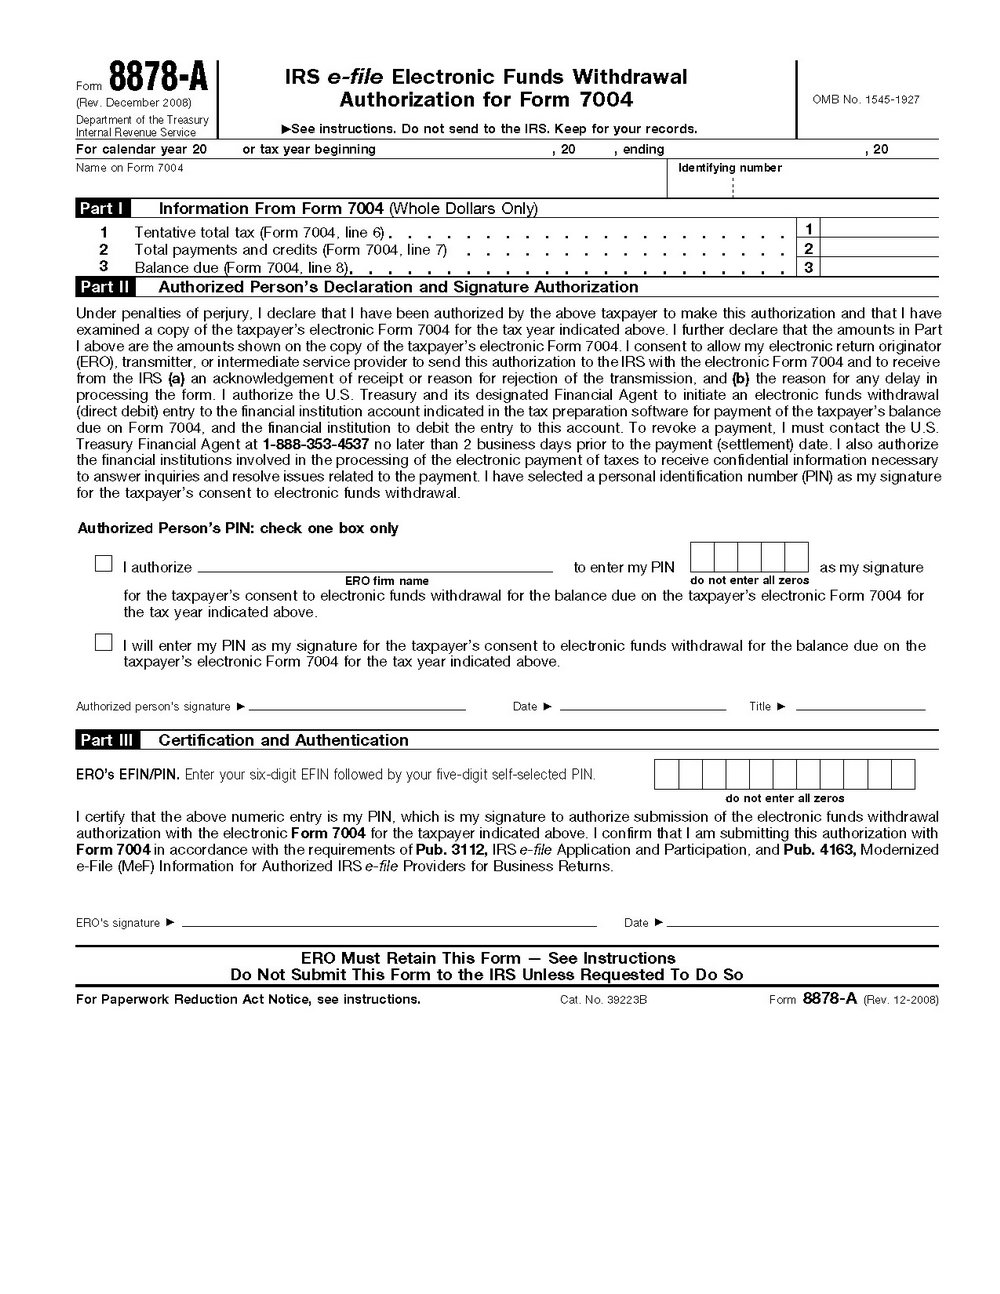 Irs.gov Free File Fillable Forms